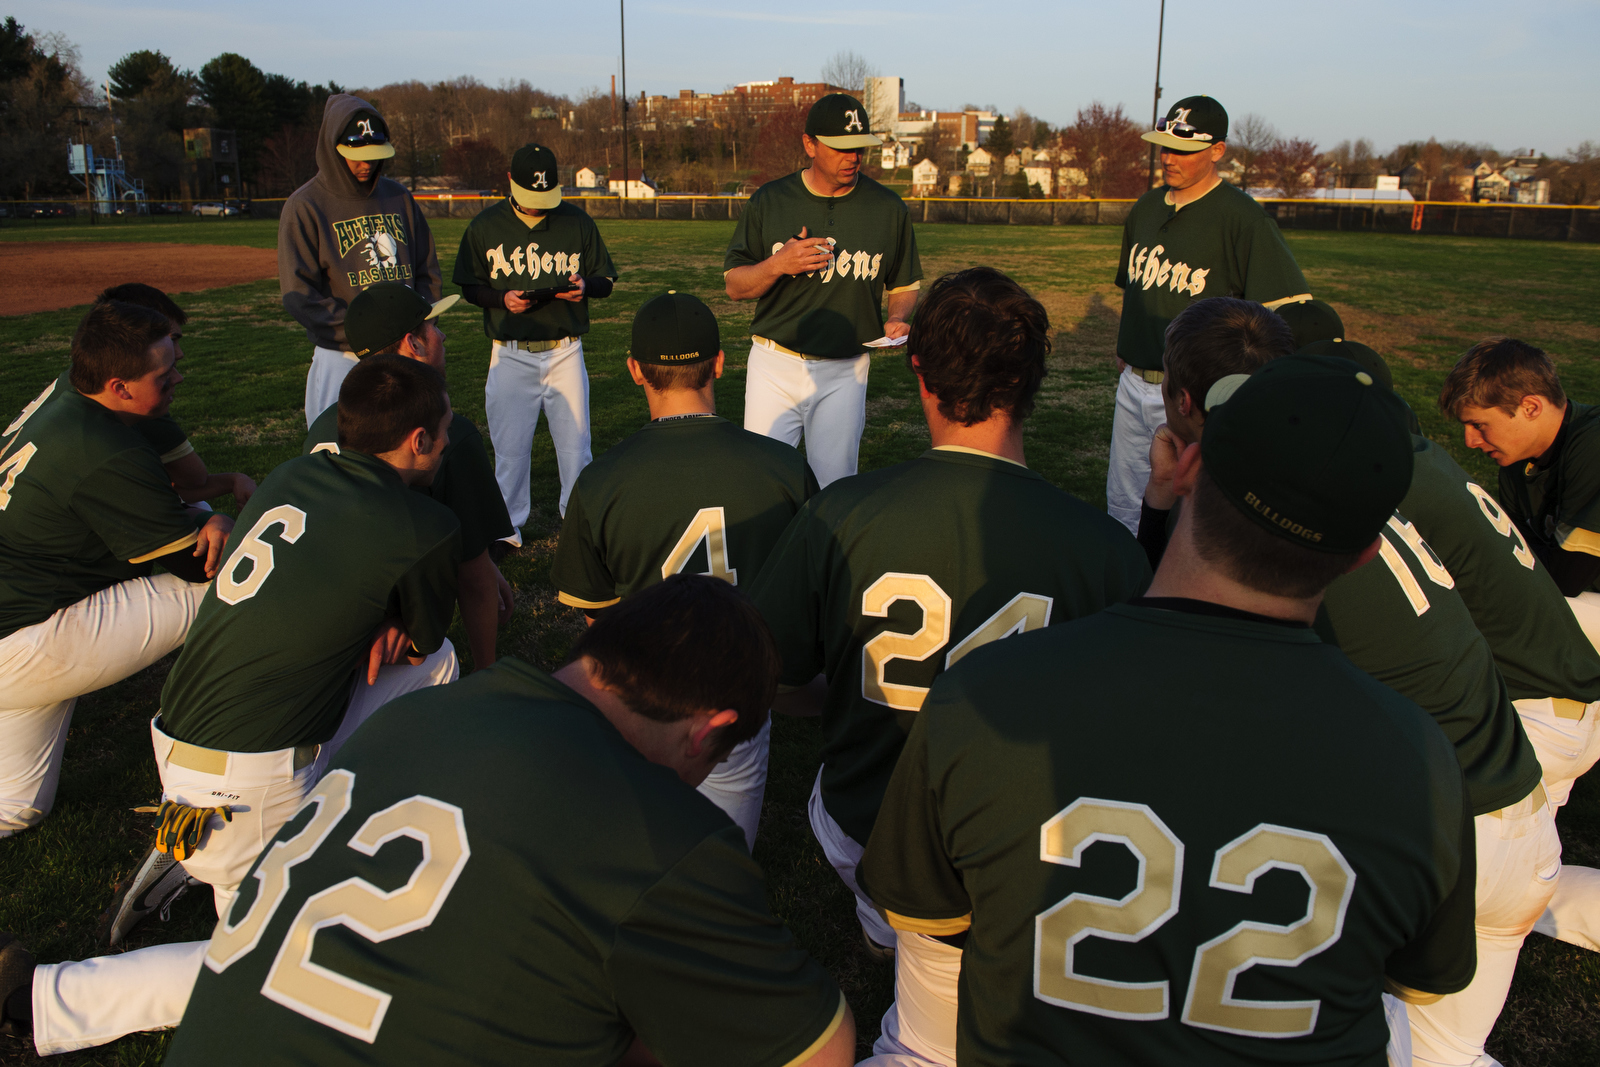 """Head Coach Chris Stewart talks to the team after their 9-5 loss against Marietta. """"There is something called free bases and we gave up too many of them today. Five of them resulted in runs,"""" said Stewart. A free base is a base taken as the result of an error. In this game, many of them were wild pitches that went past the catcher."""